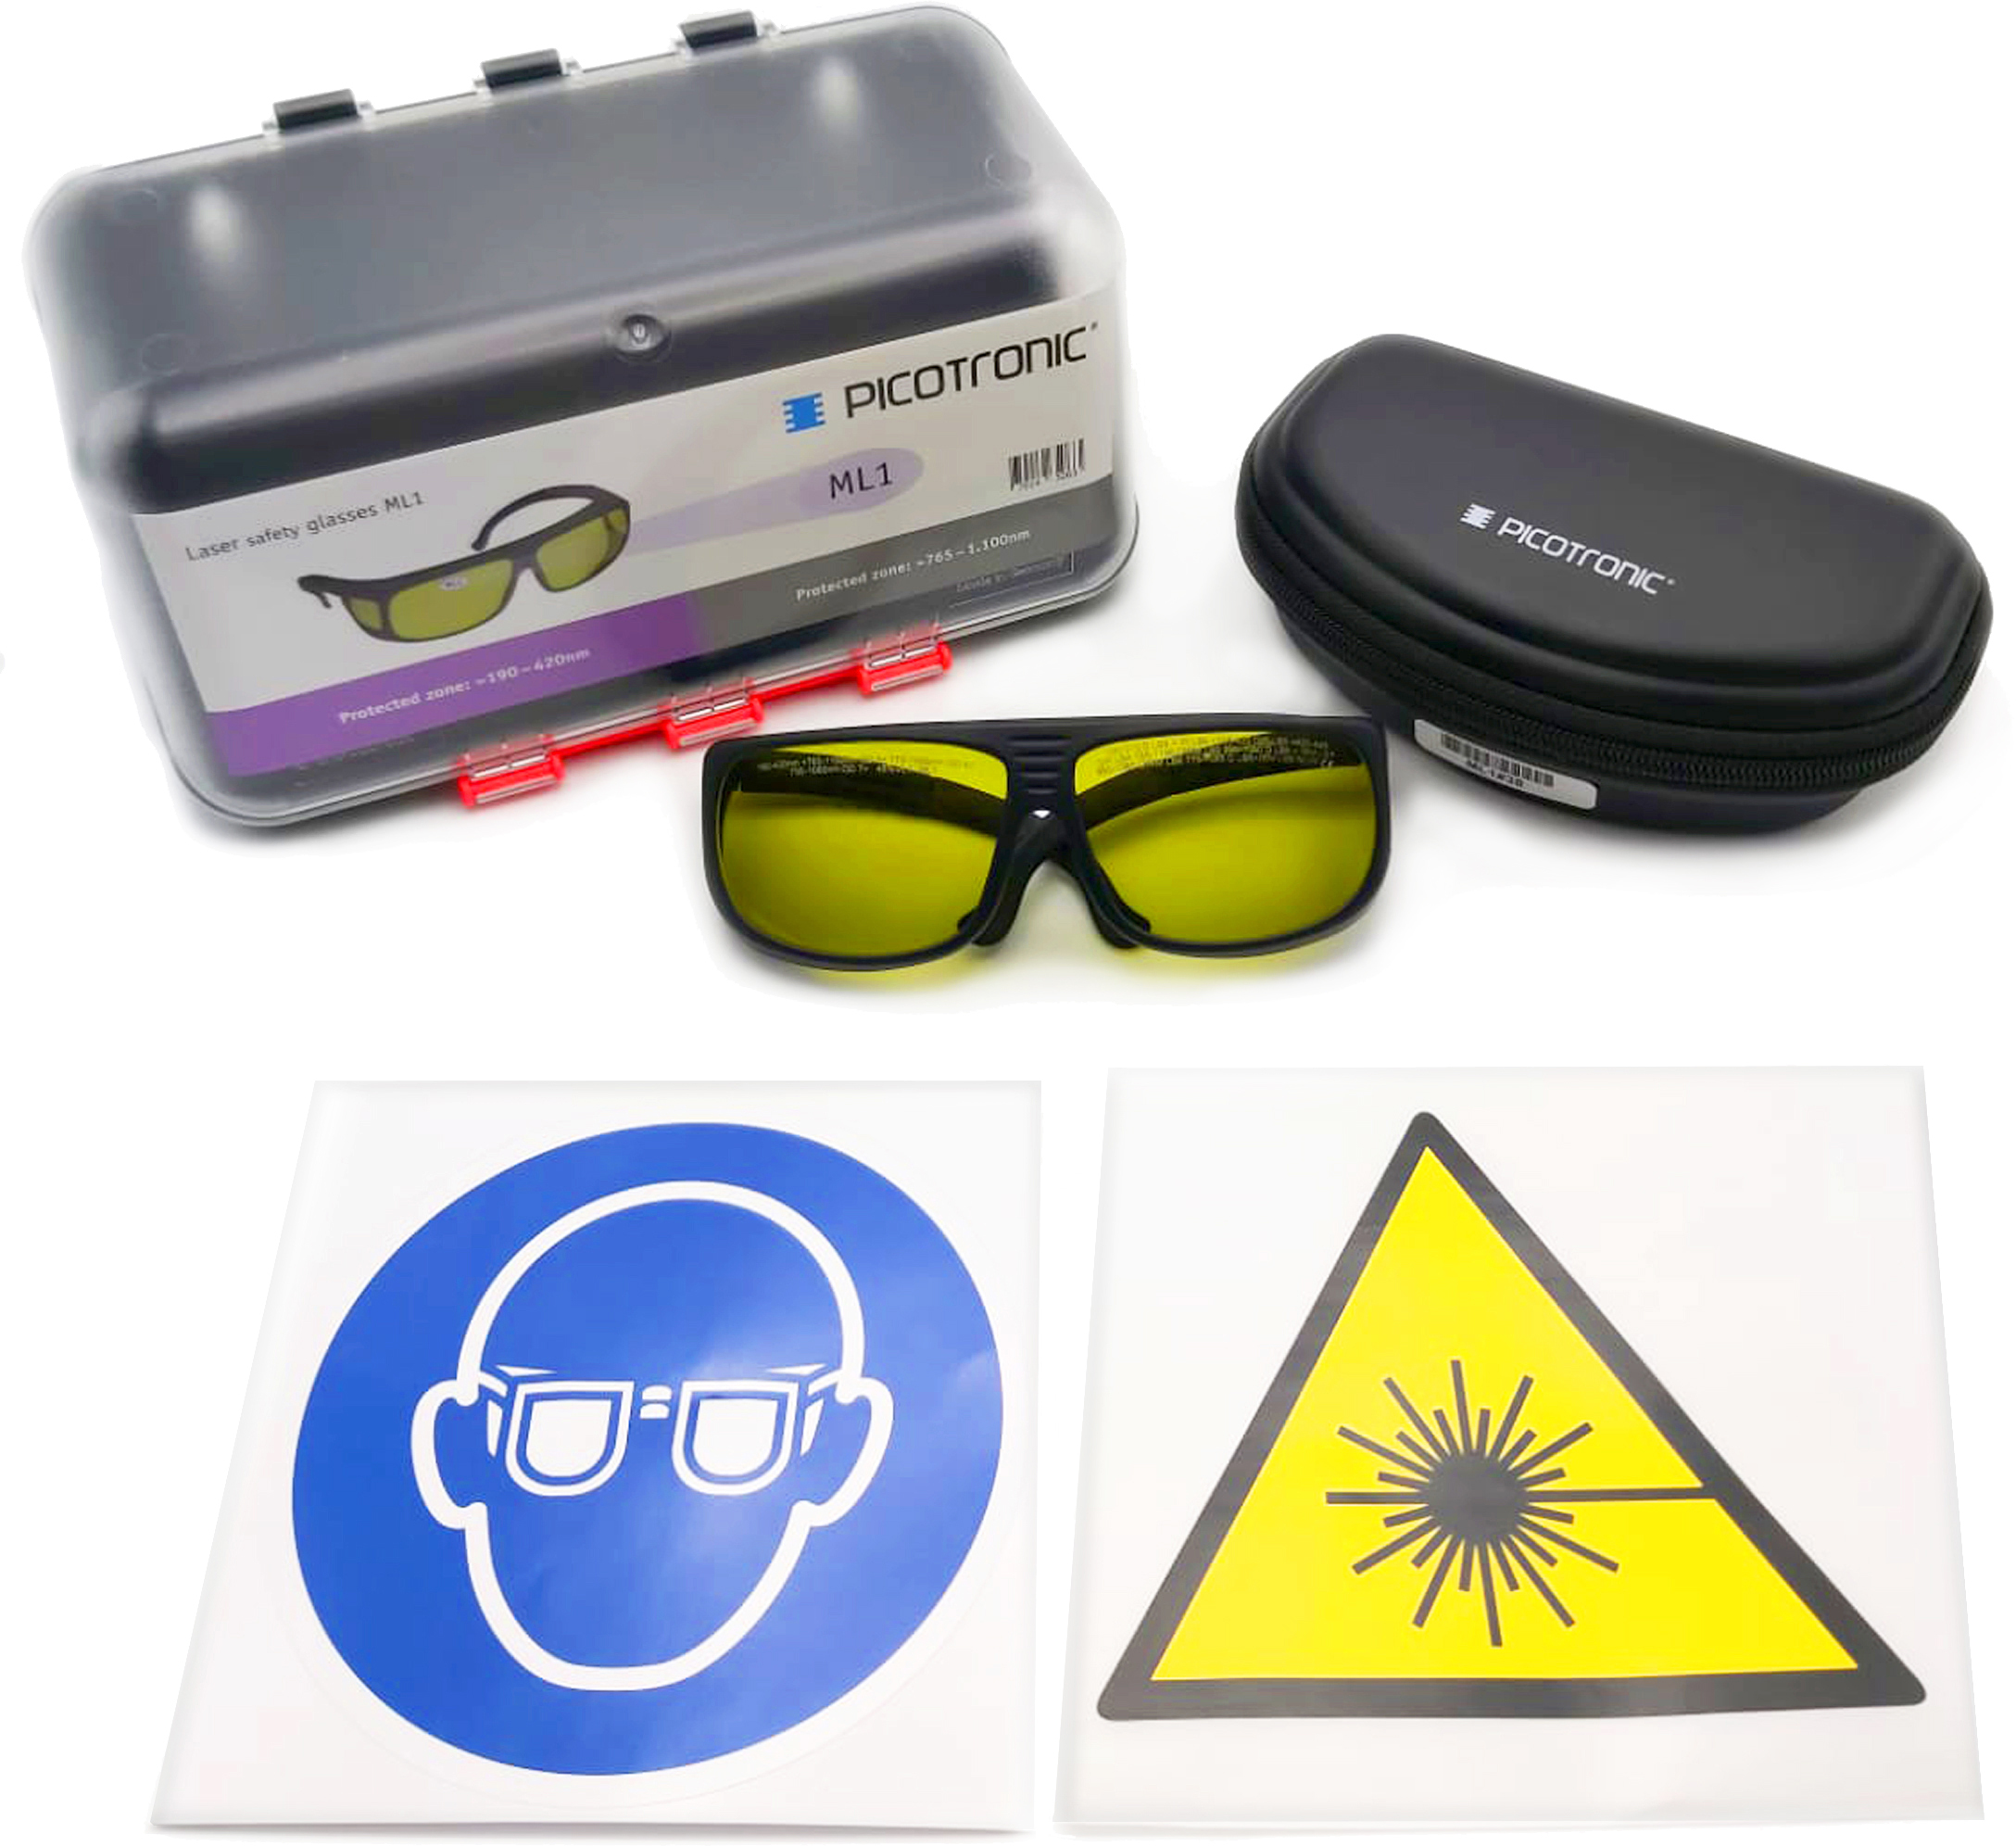 https://media.picotronic.de/products/ds_picture/lightbox/ML1_Box.jpg